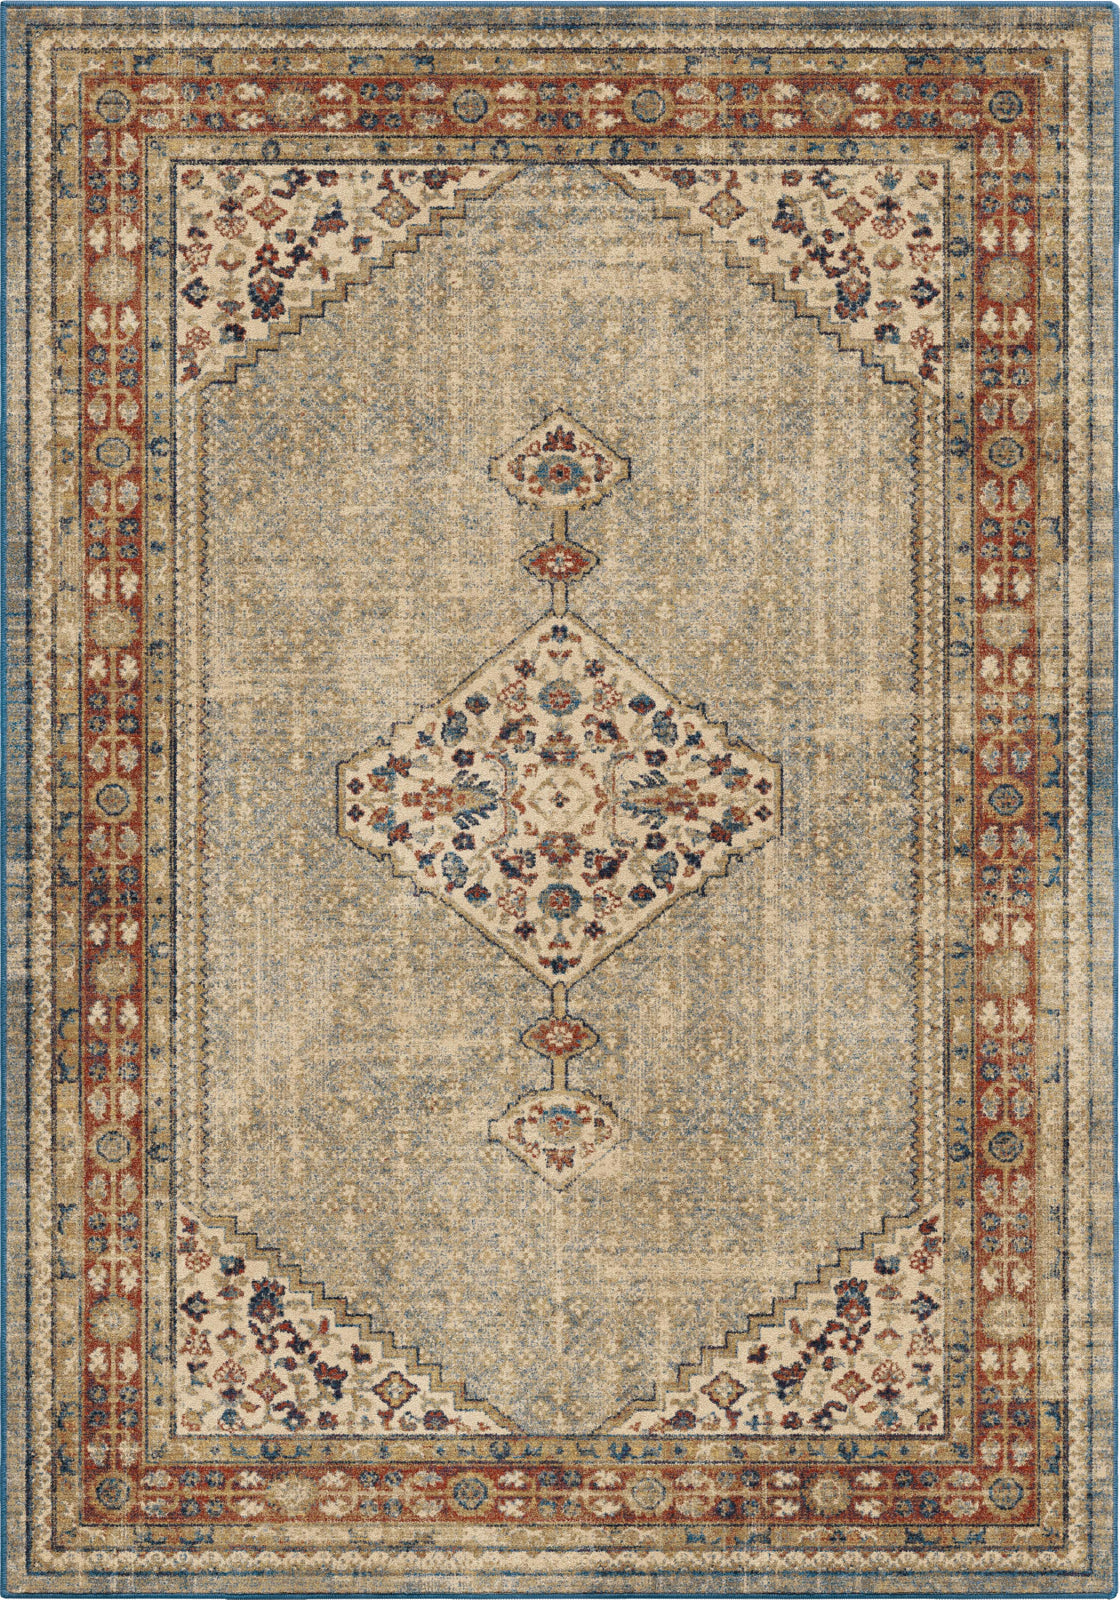 Orian Rugs Alexandria Ouman Blue Thatch Area Rug by Palmetto Living main image